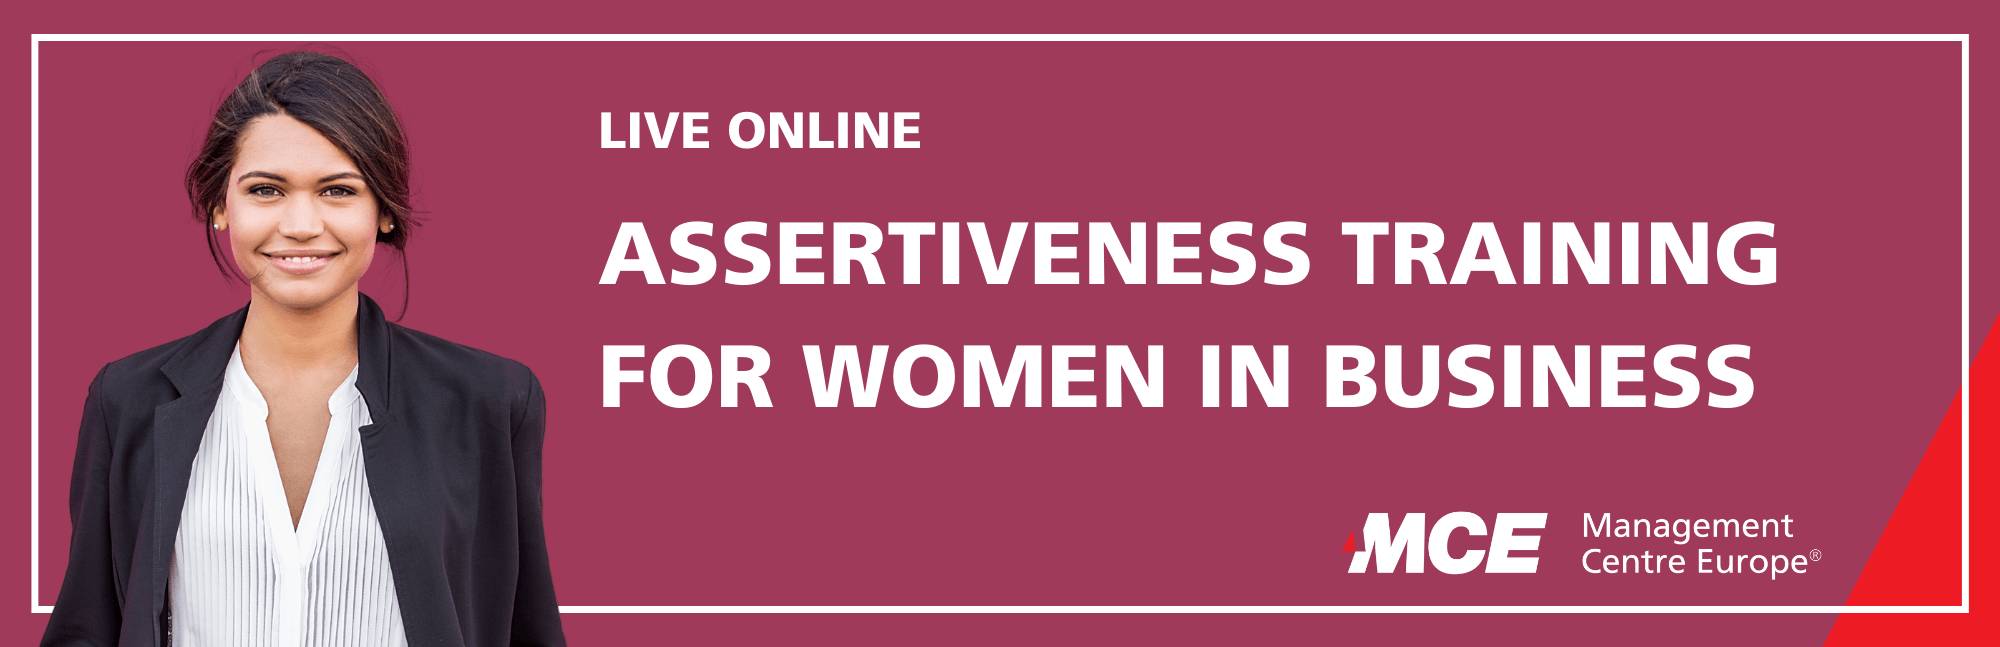 Event Assertiveness Training for Women in Business